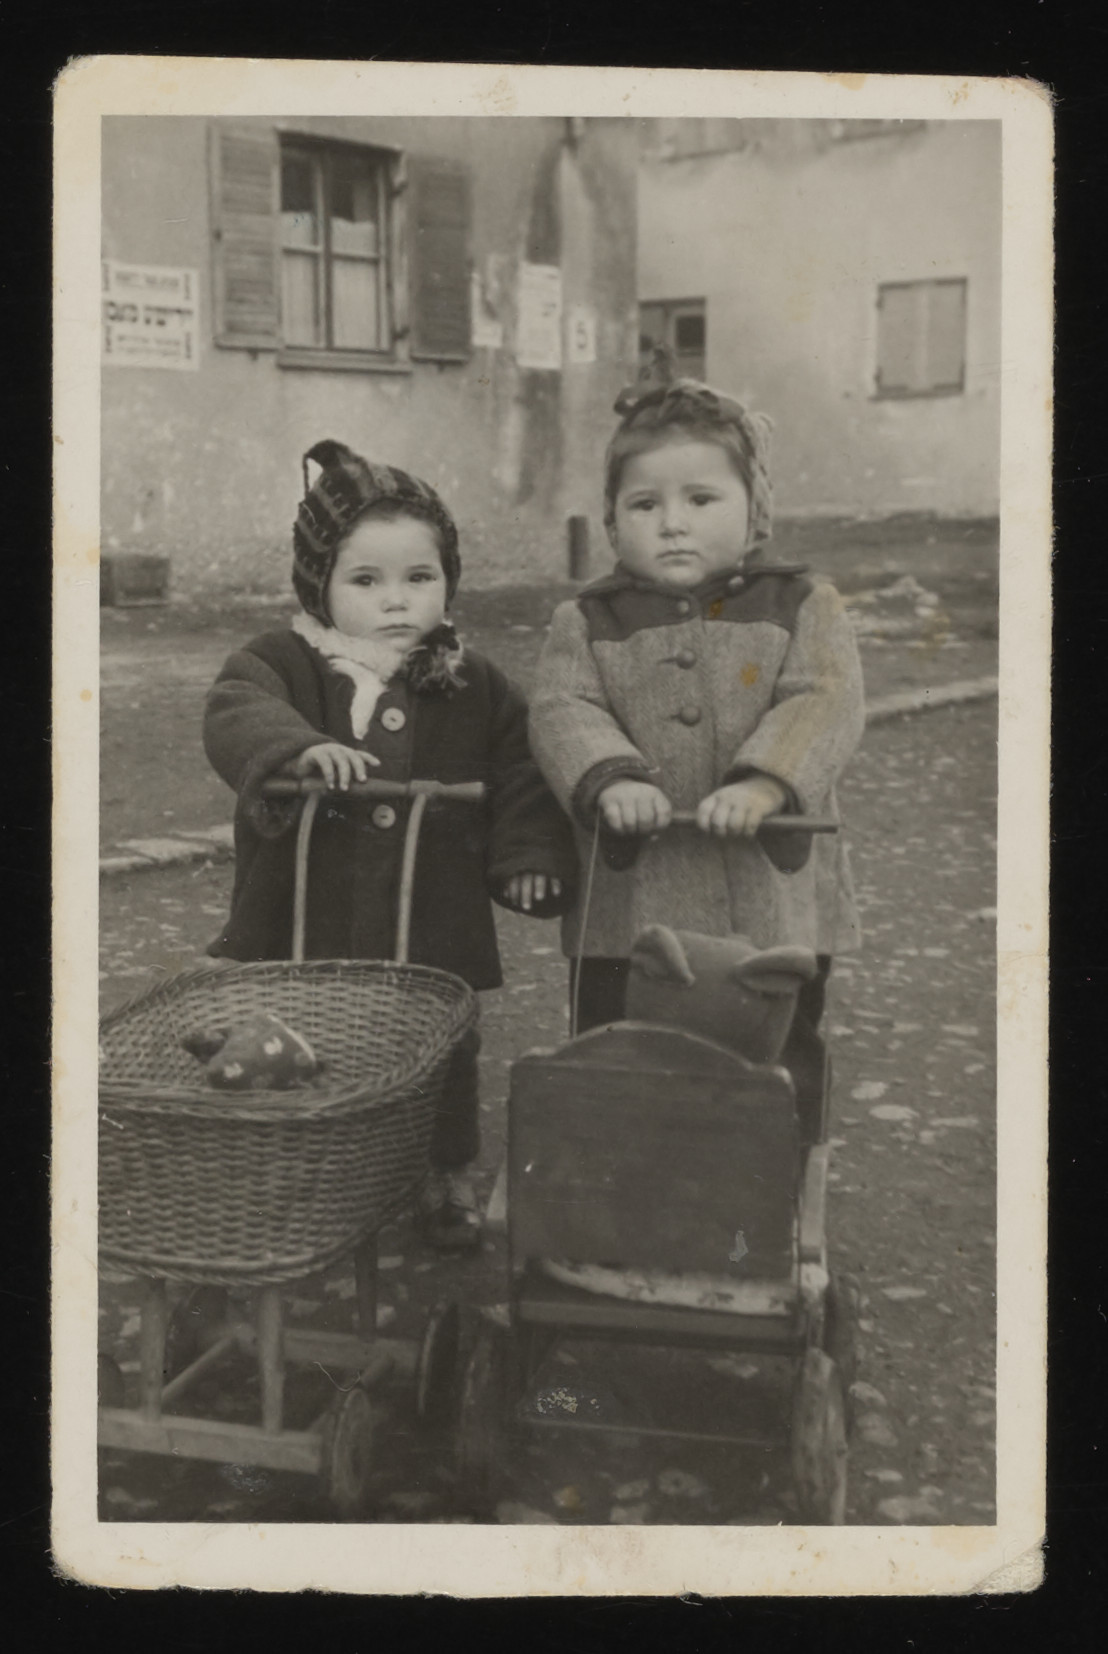 Two children push toy carriages at the Foehrenwald DP camp.    The girl on the left is Sara Winiger.